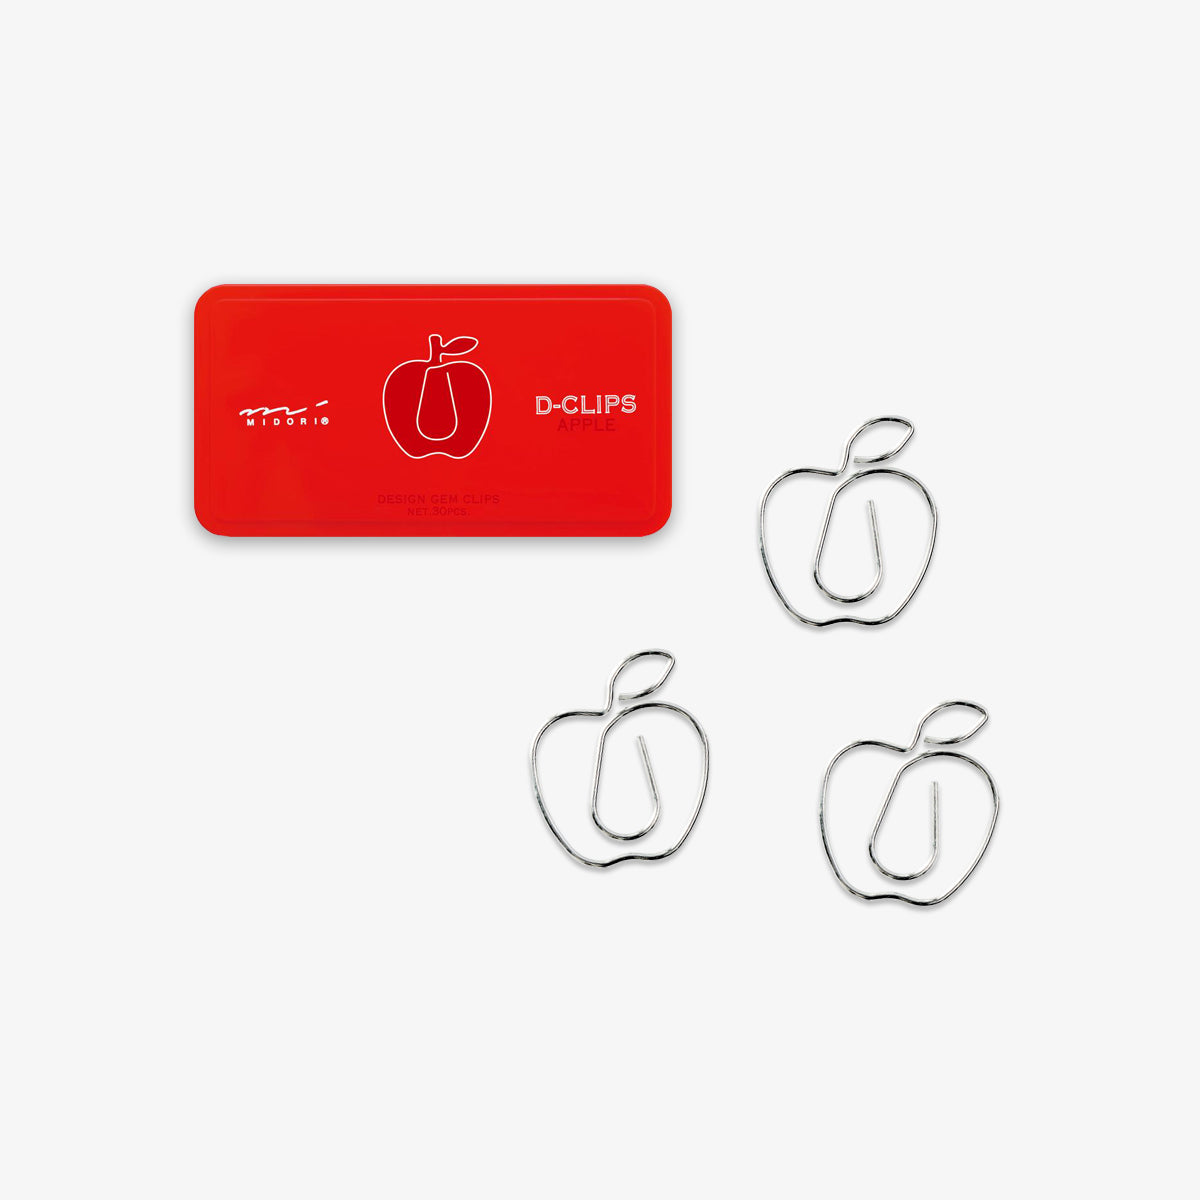 D-CLIPS MINI // APPLE